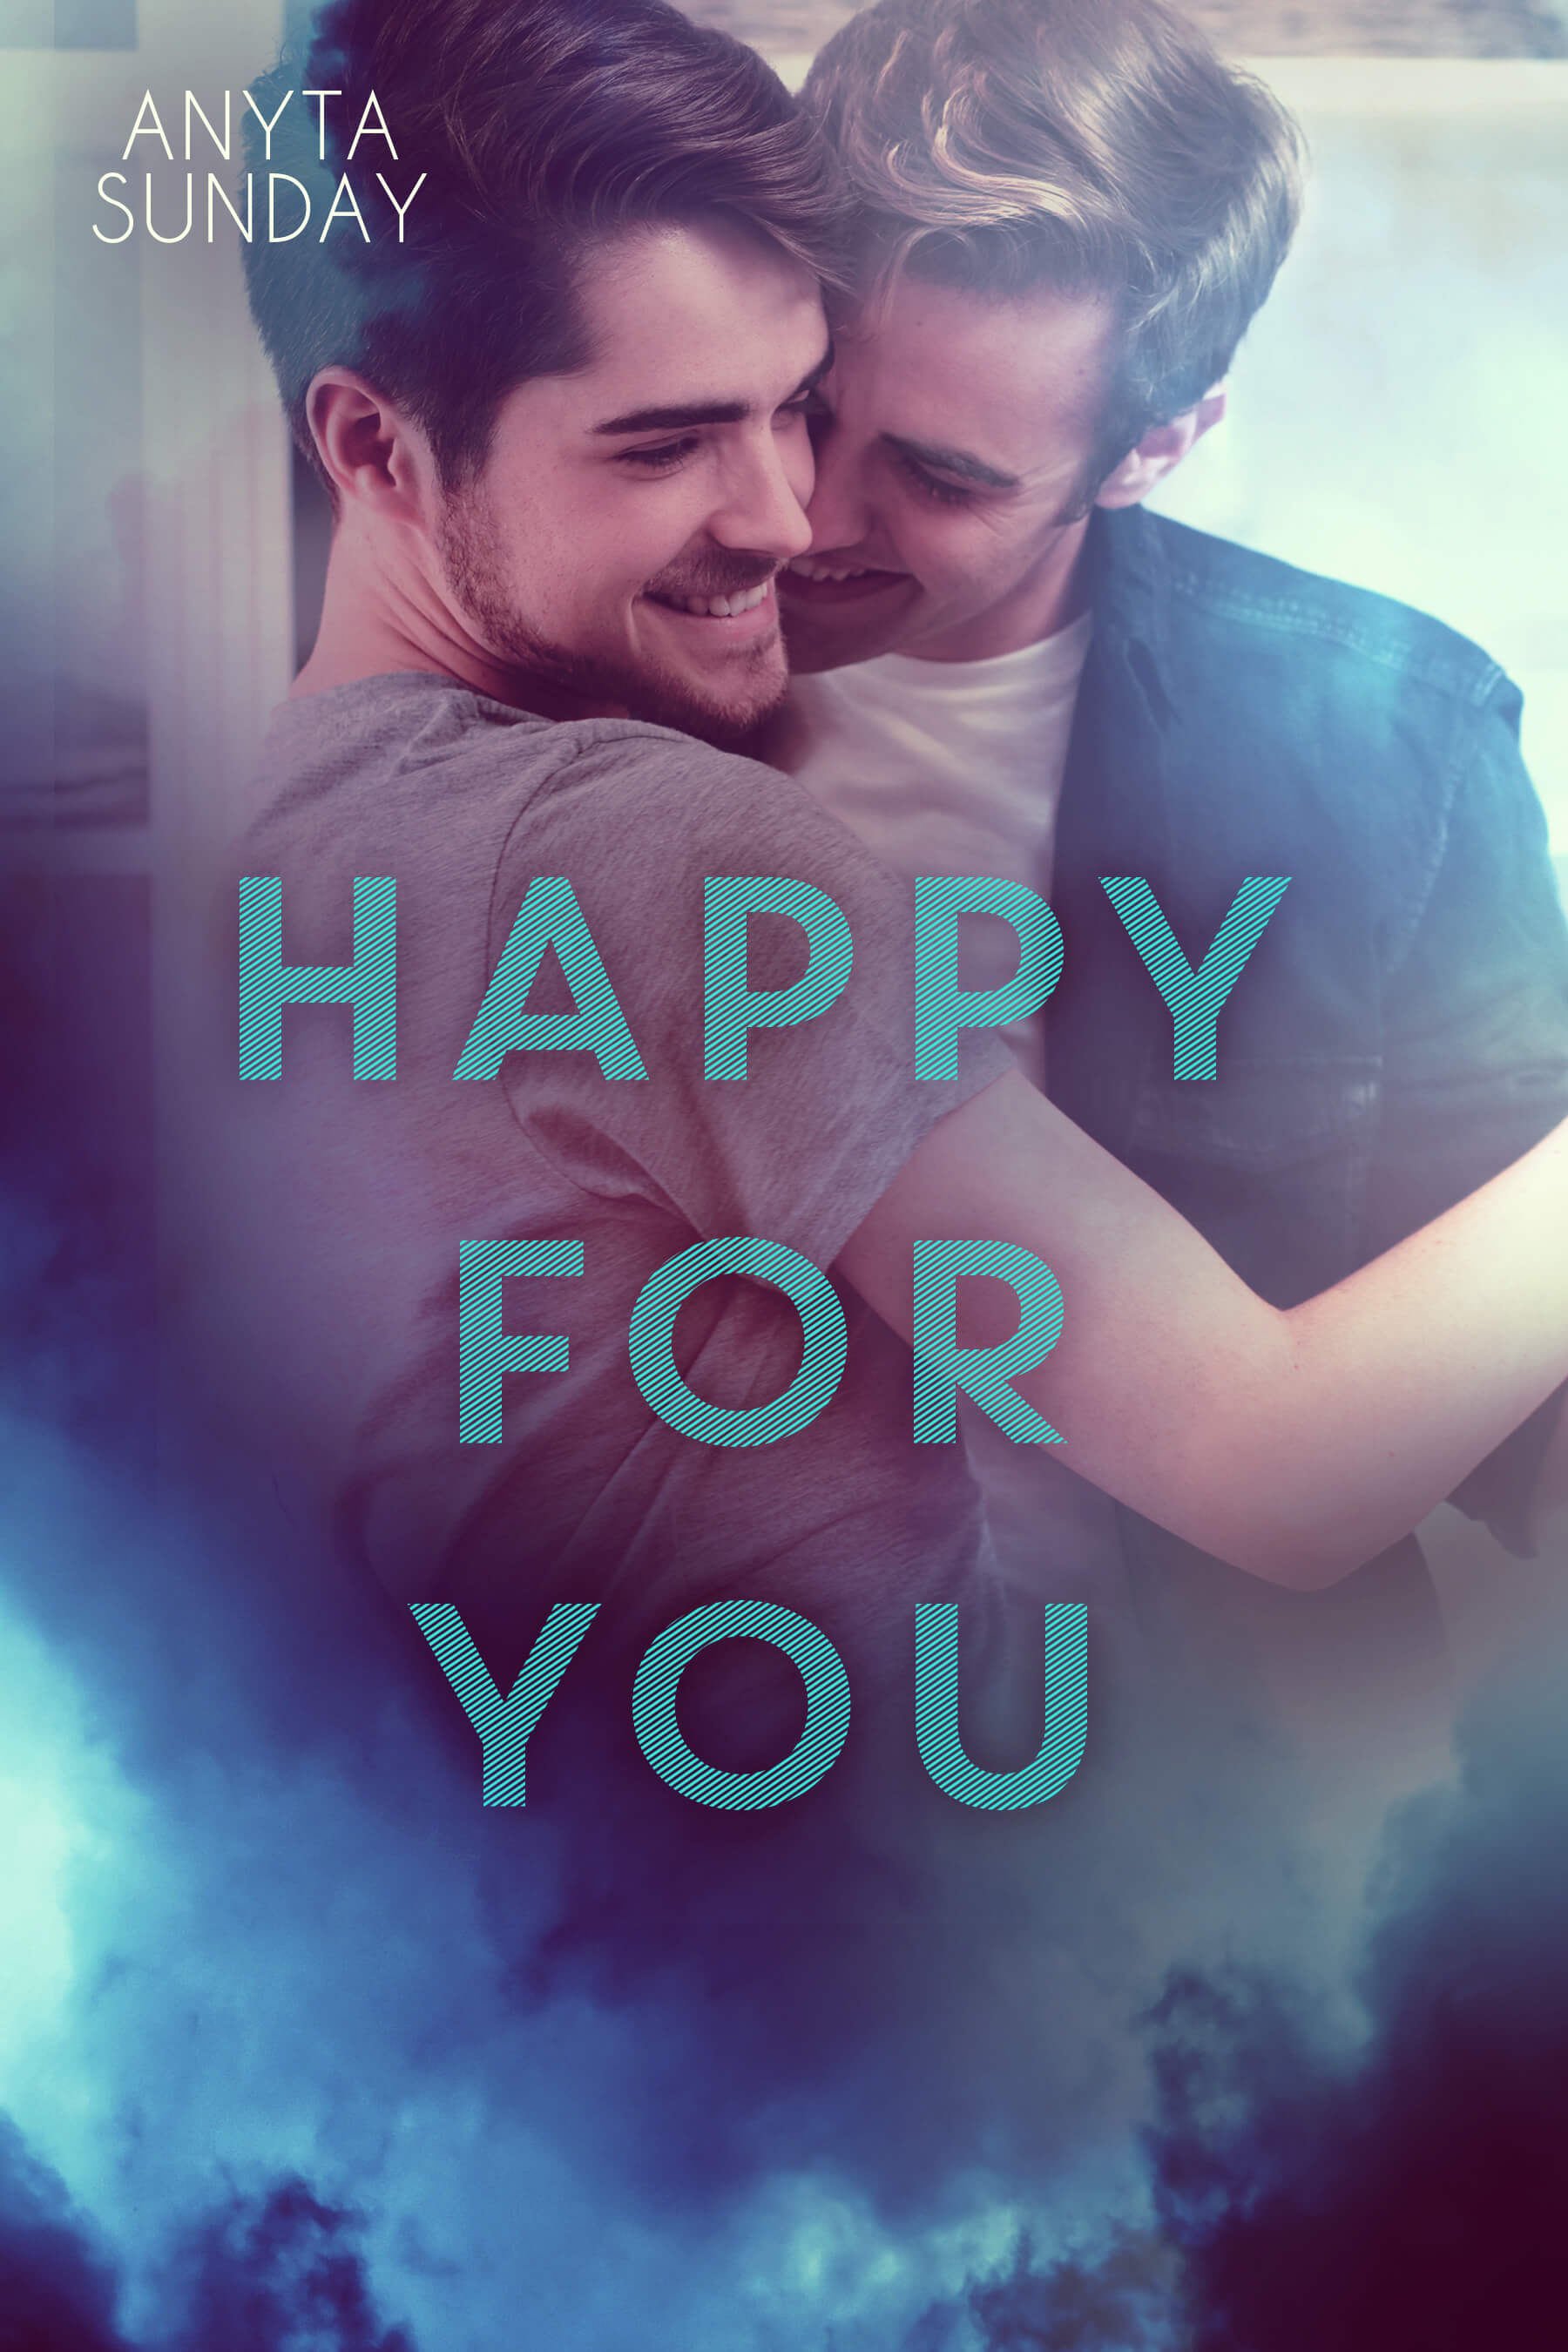 Excerpt: Happy for You by Anyta Sunday